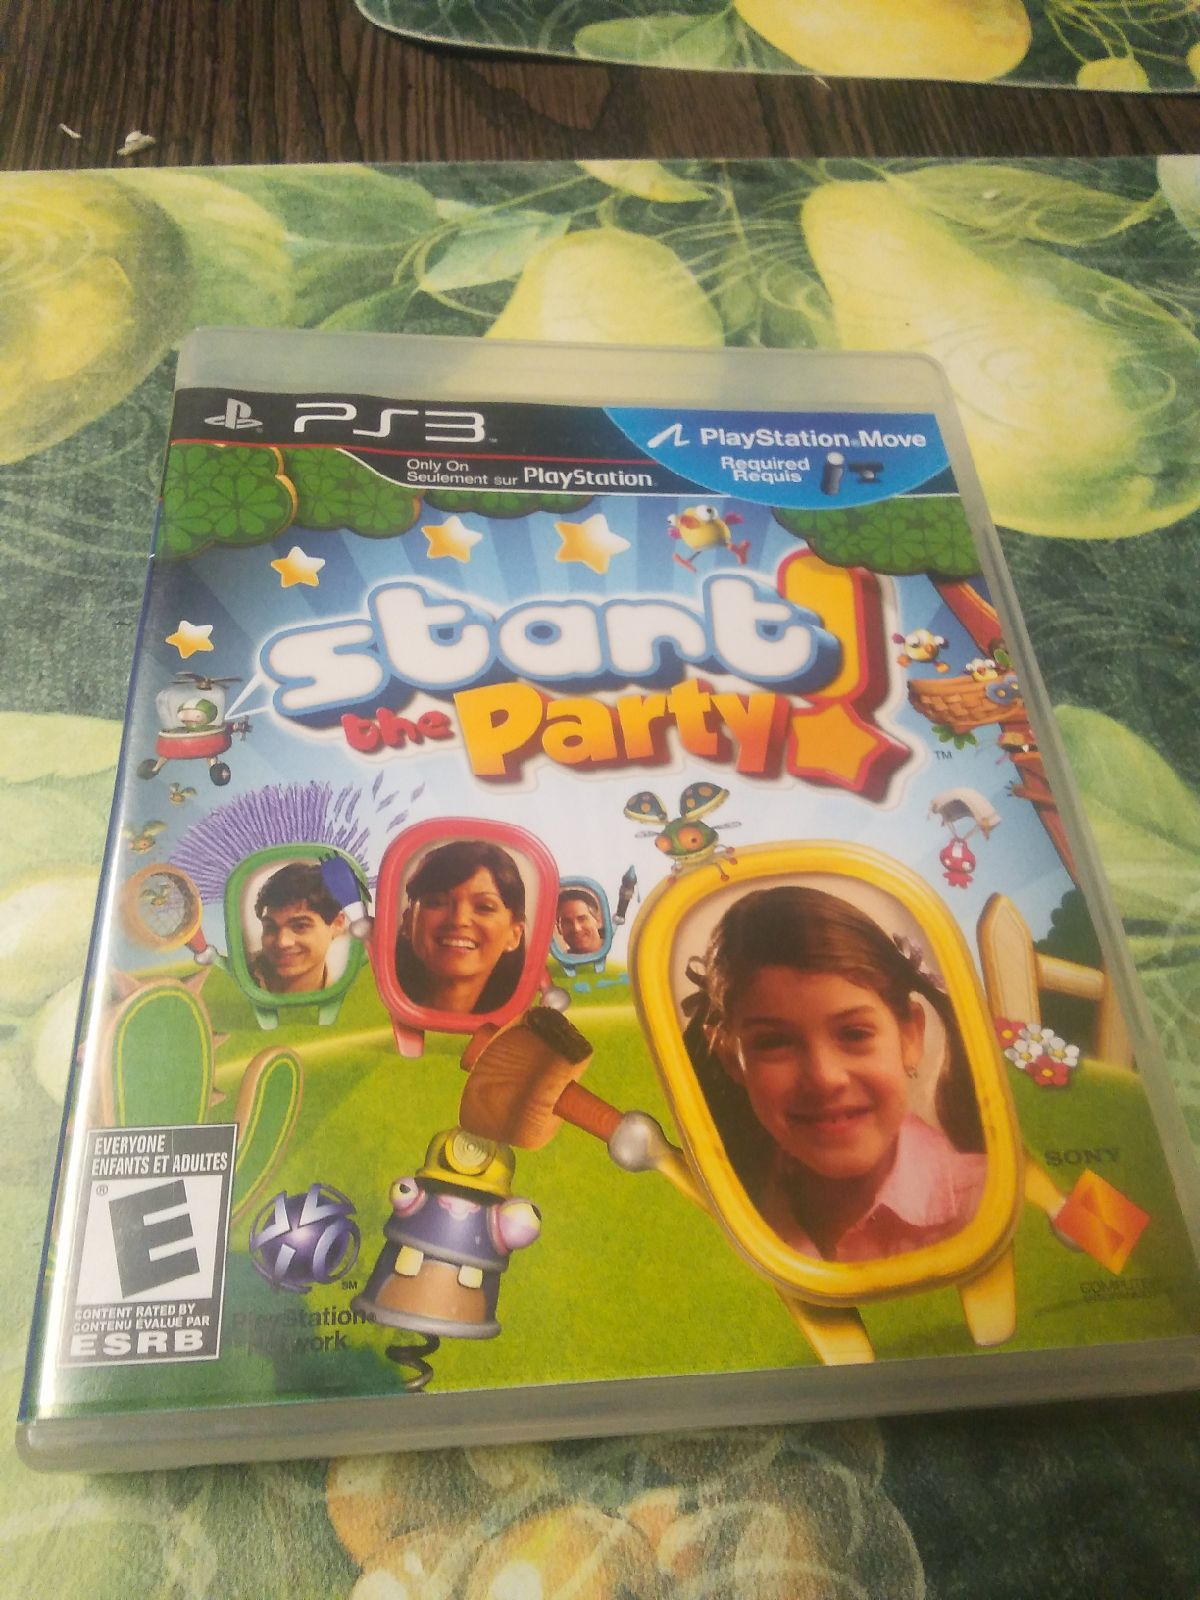 Start the Party! on Playstation 3